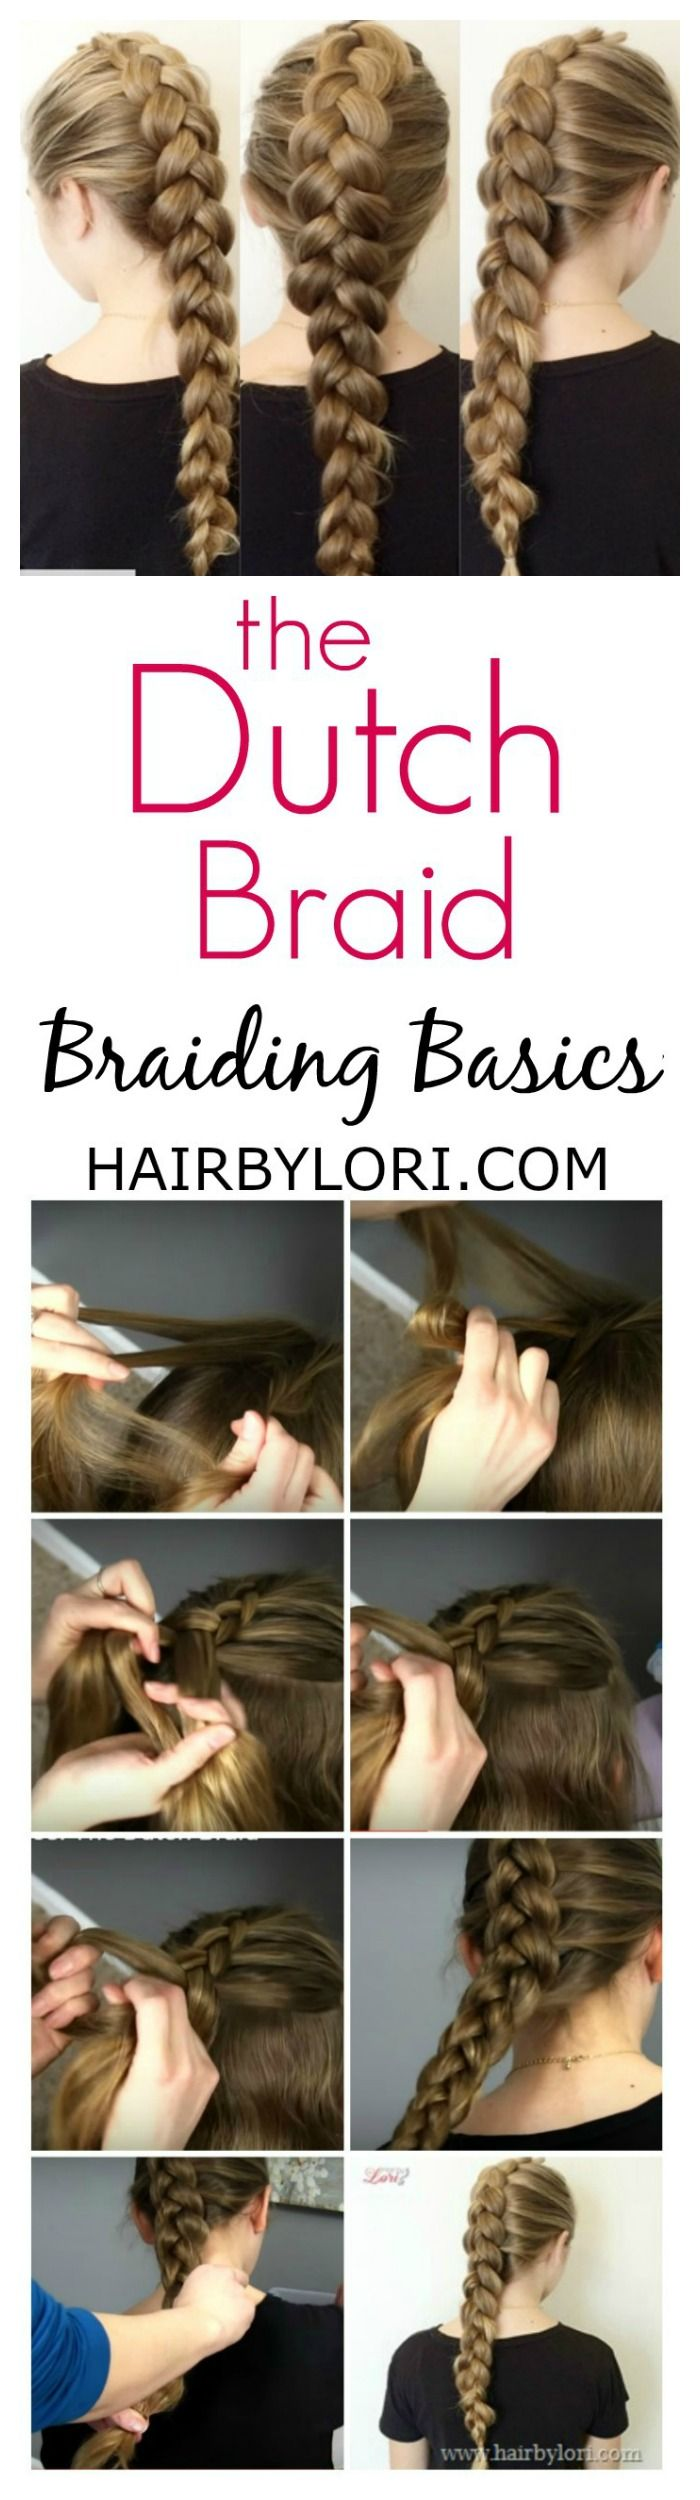 Braiding Basics €� How To Dutch Braid Inside Out French